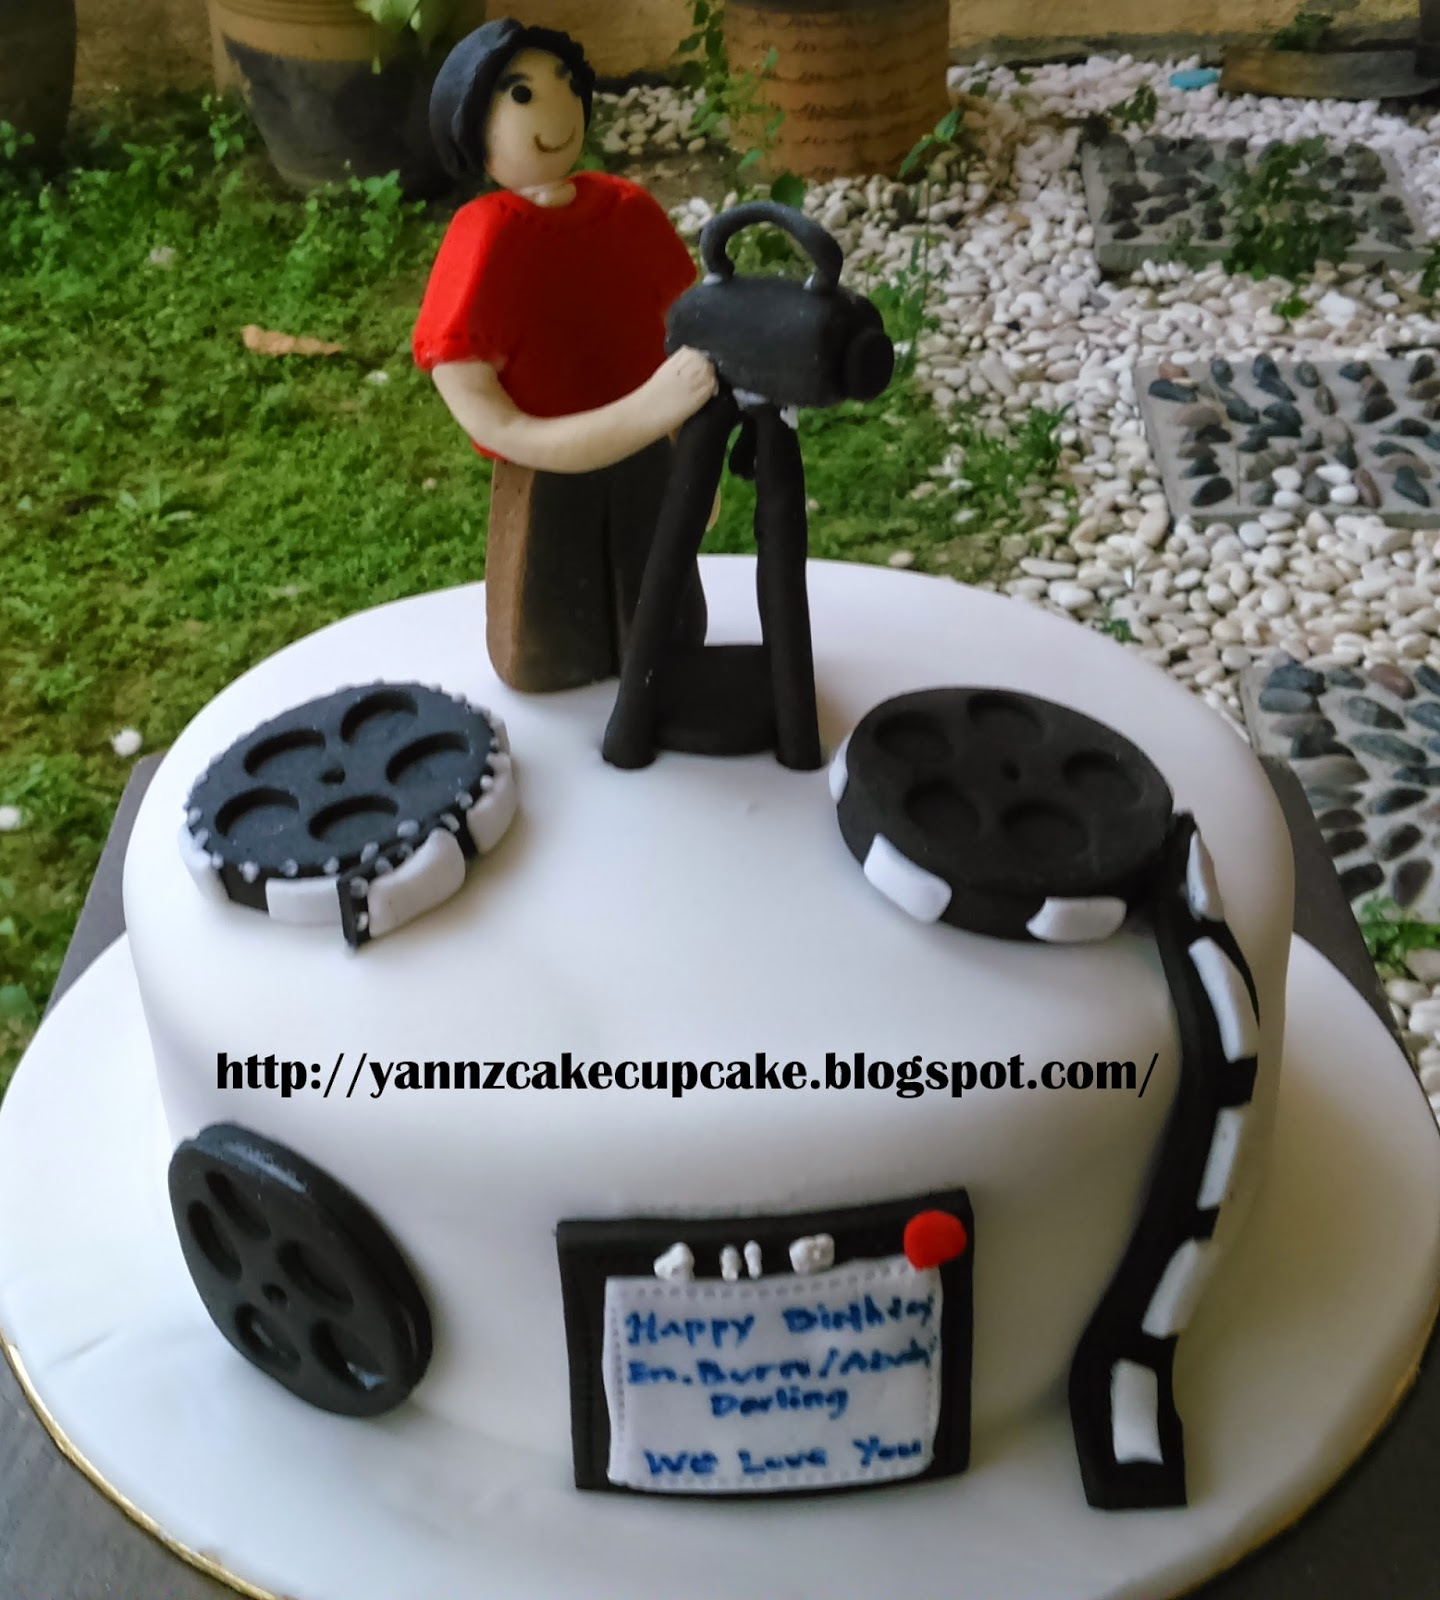 Pleasant Broadcasting Cake In Action Yannzcakecupcakecom Funny Birthday Cards Online Barepcheapnameinfo